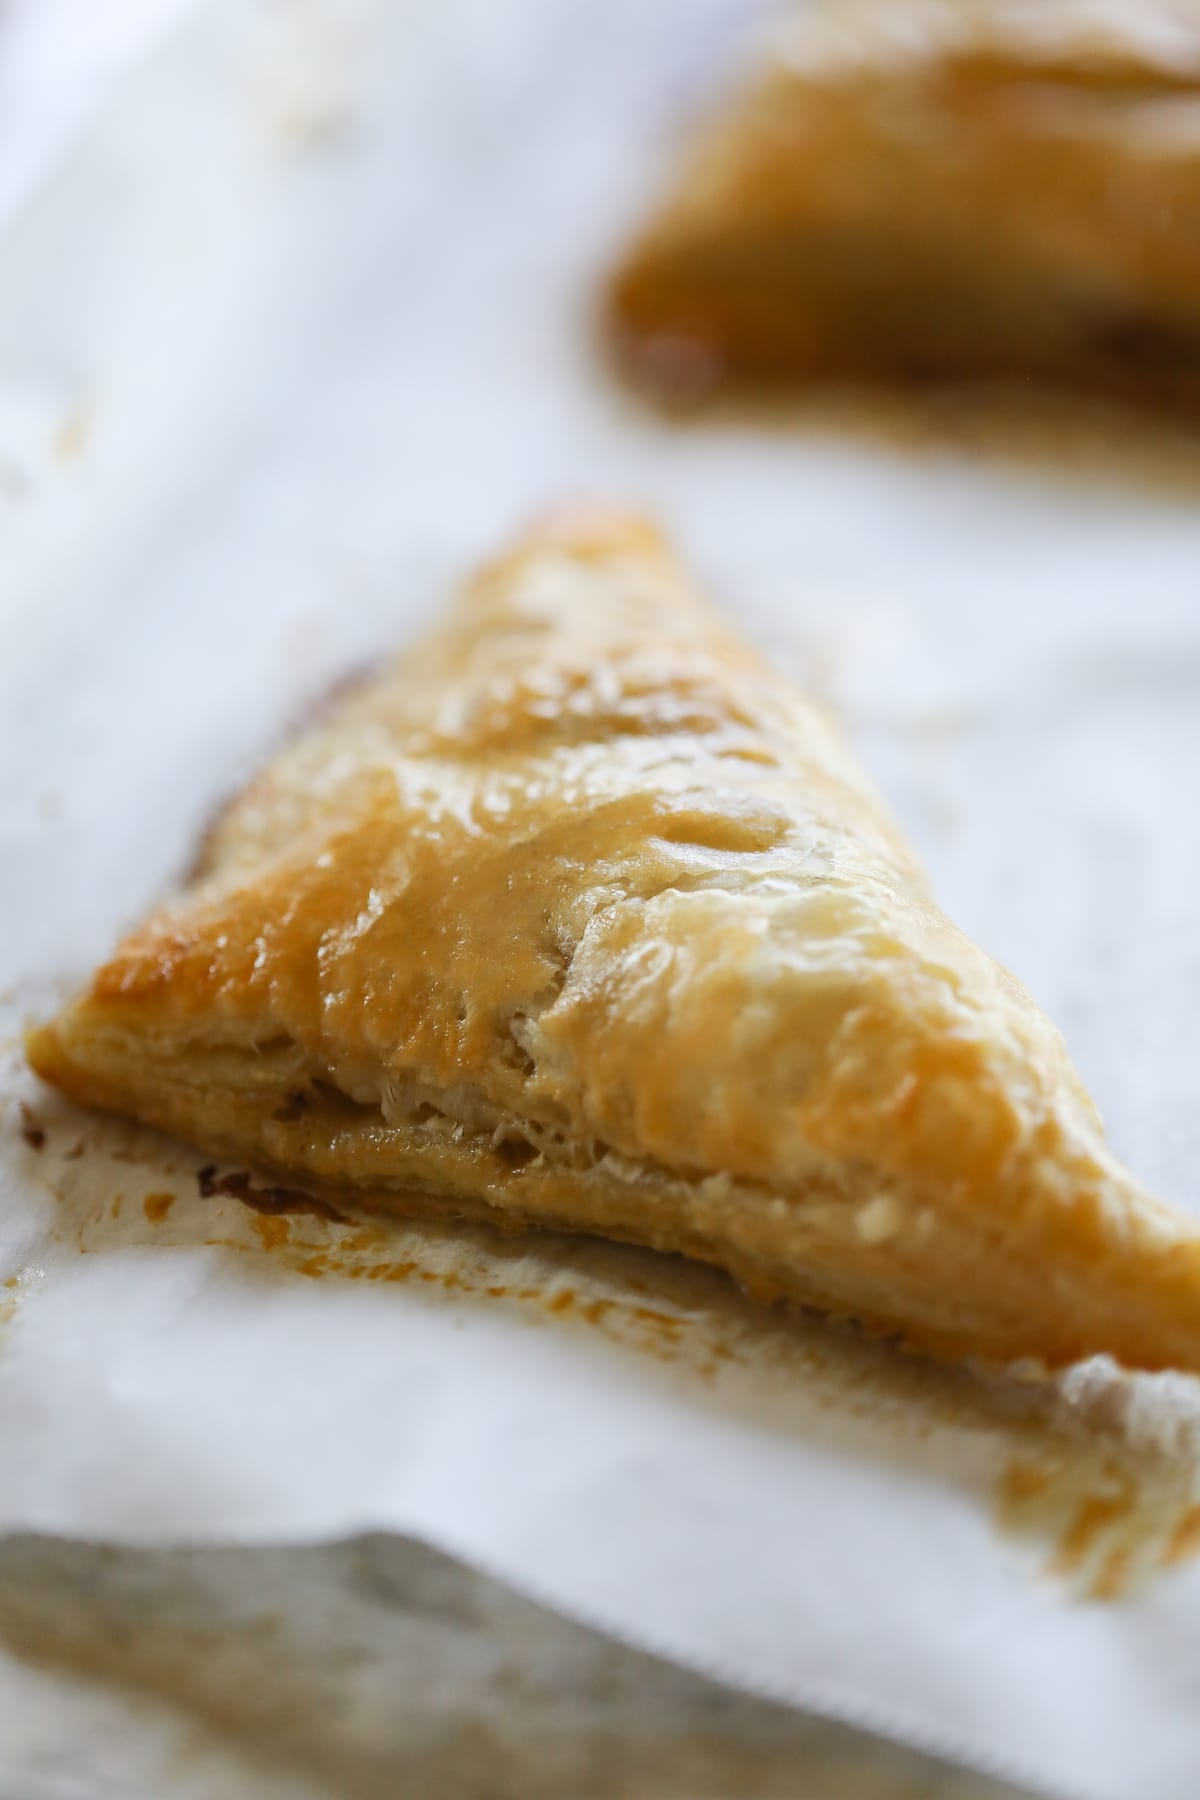 baked apple turnover on parchment paper